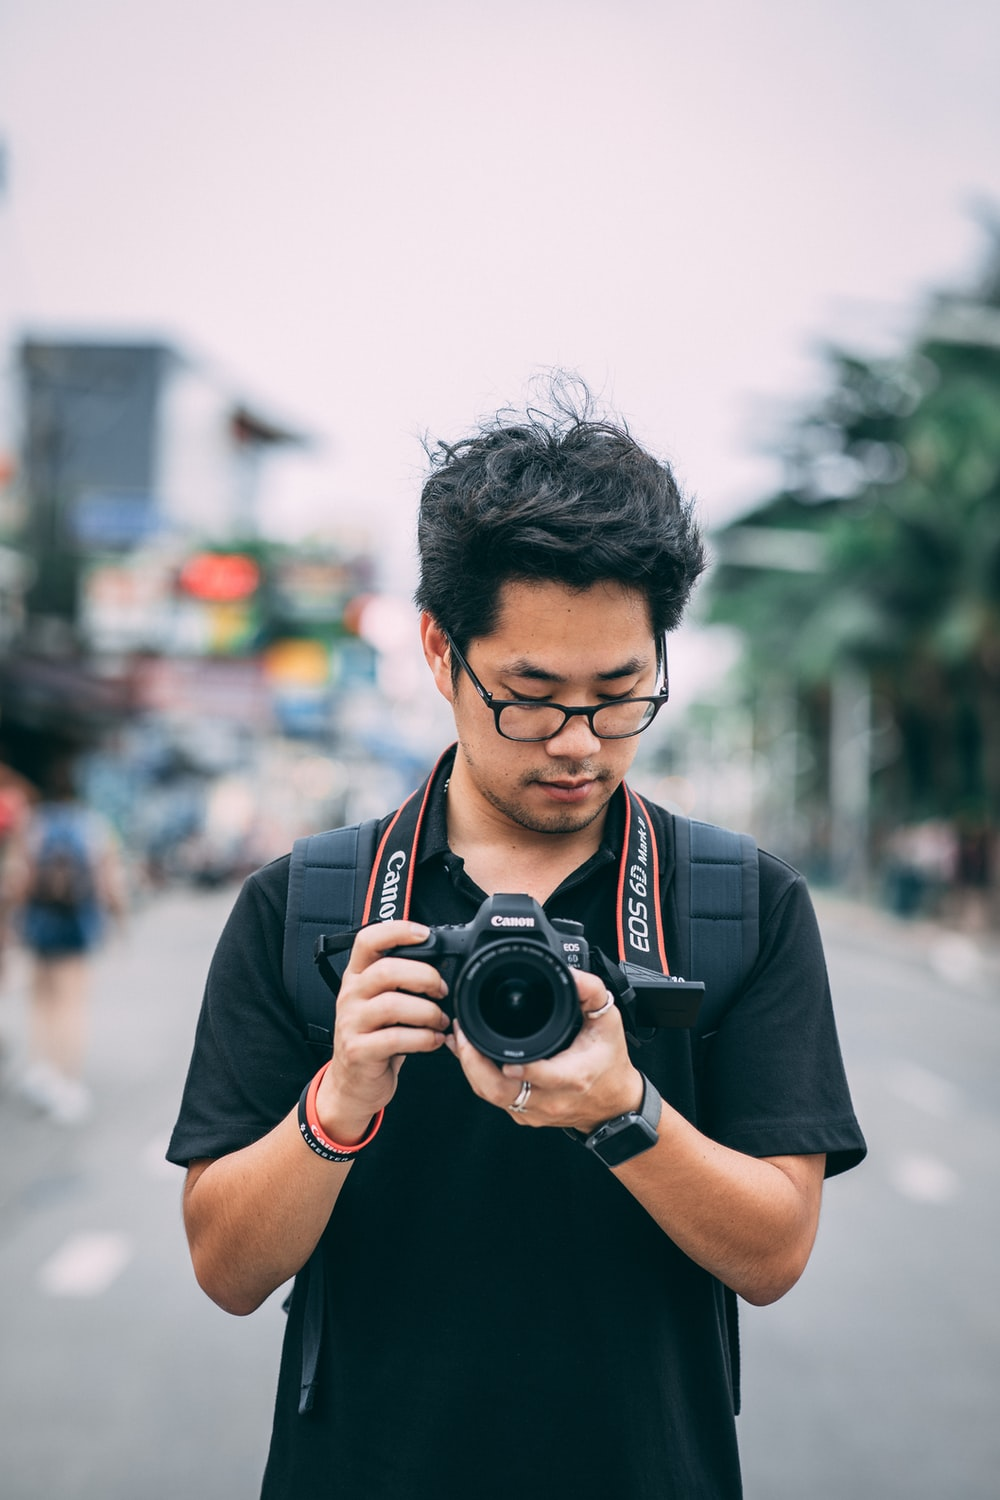 100 Photo Shoot Pictures Hd Download Free Images On Unsplash